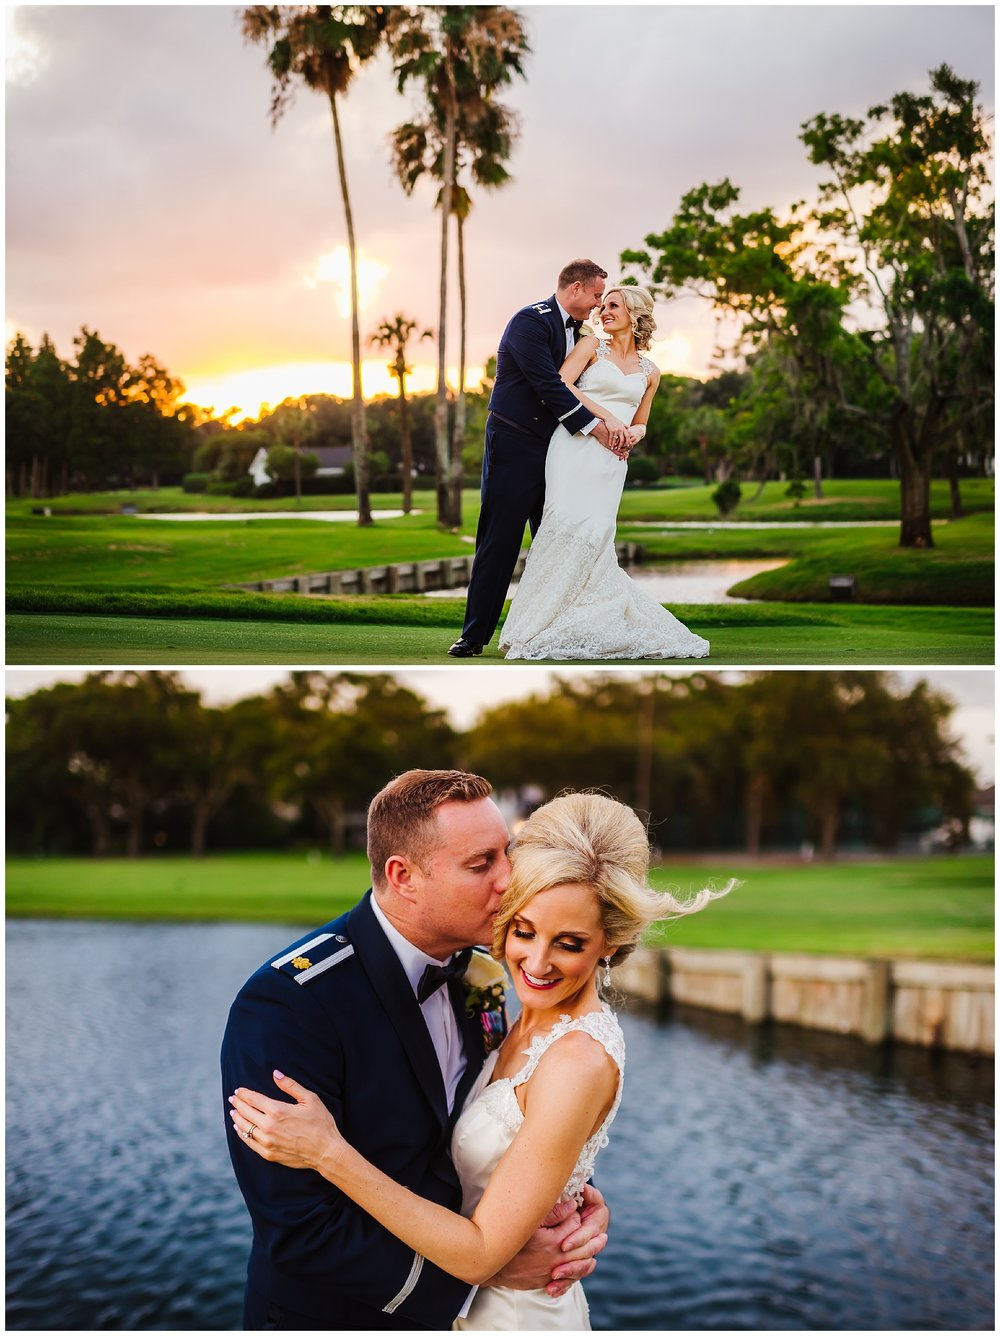 tampa-wedding-photographer-sleeves-palma-ceia-country-club-golf-course-sunset-luxury_0102.jpg